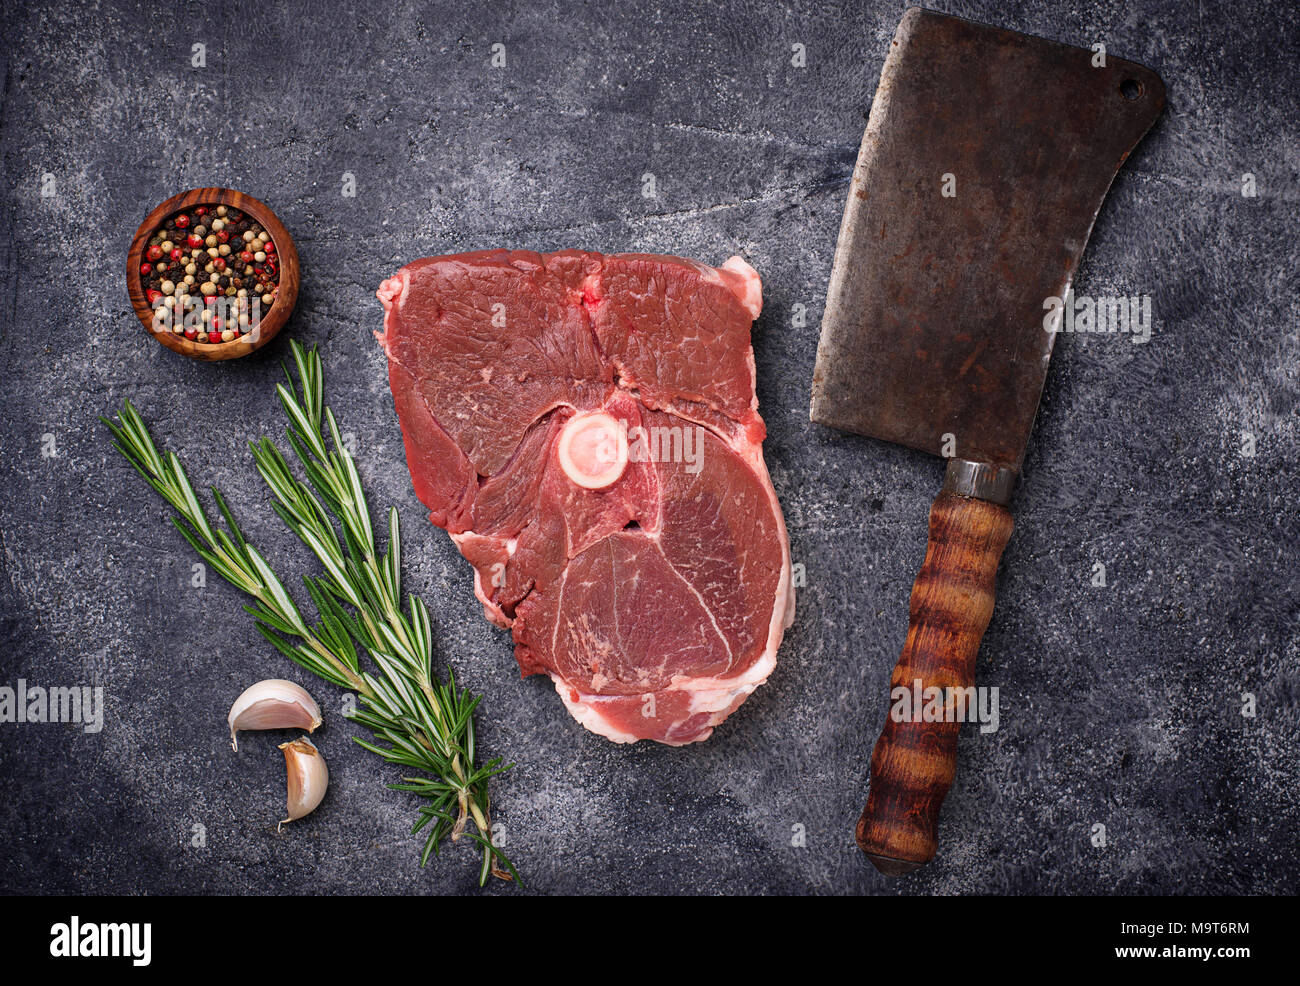 Lamb meat with rosemary, spices and cleaver.  - Stock Image